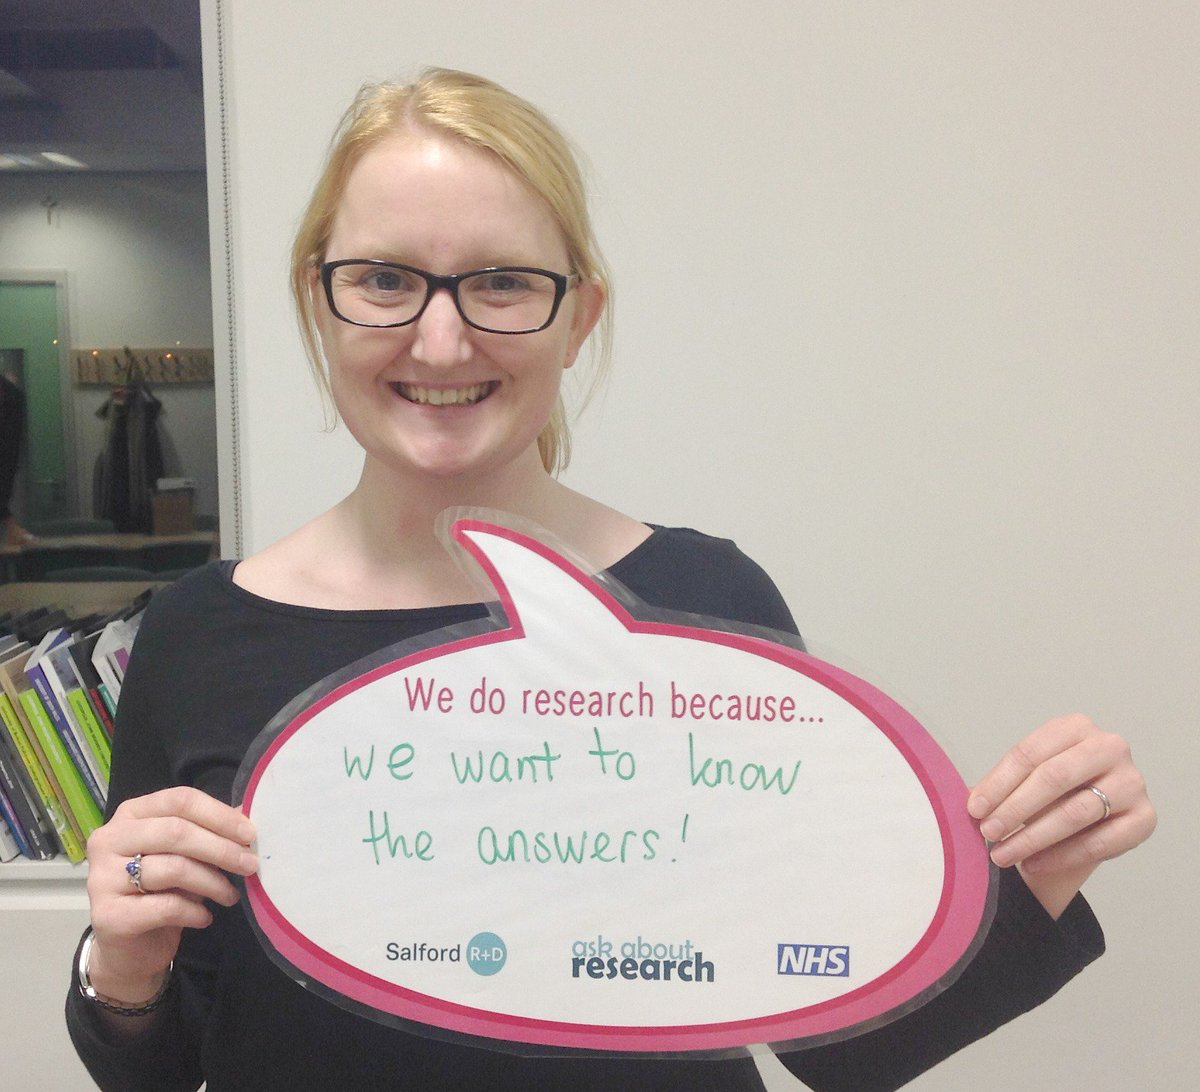 We're celebrating #artinresearch project with @MccirUoM + @SABSalford tonight - here's Amy with her #whywedoresearch https://t.co/8XbRMXFp7r